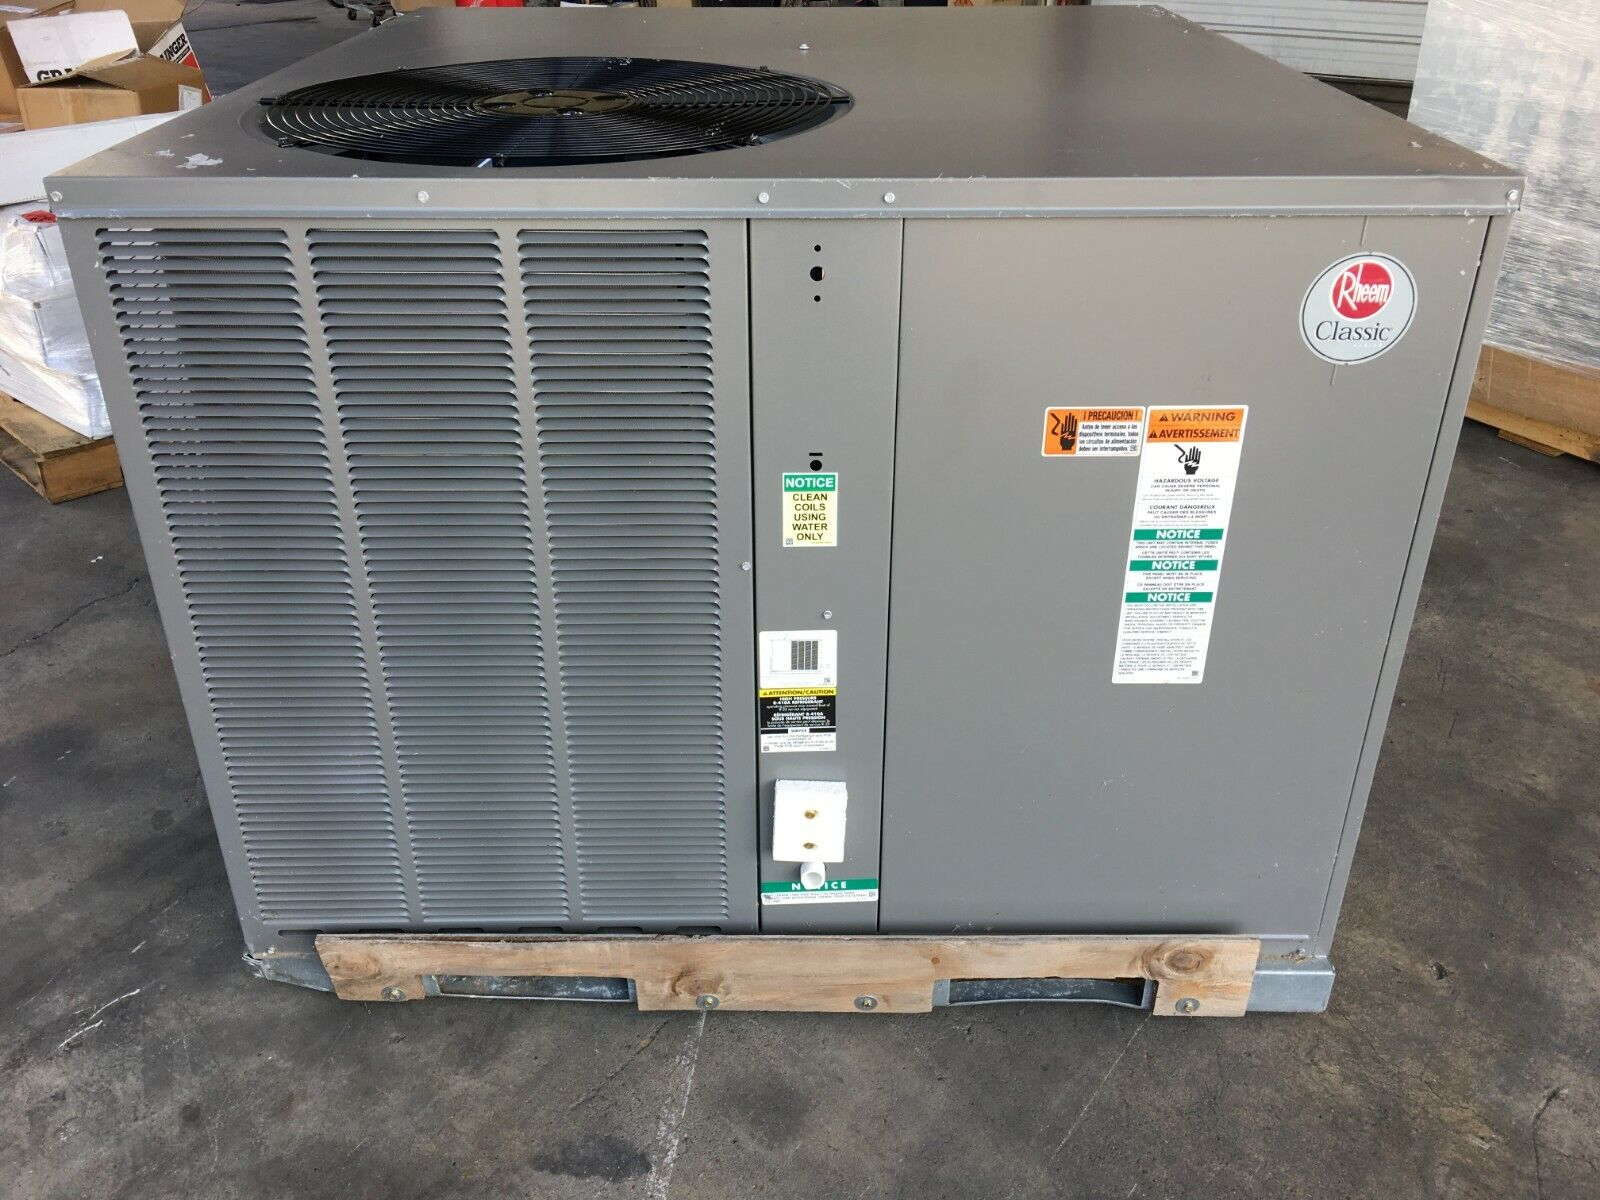 RHEEM 3 TON CLASSIC PACKAGED AIR CONDITIONER 14 SEER 208-230